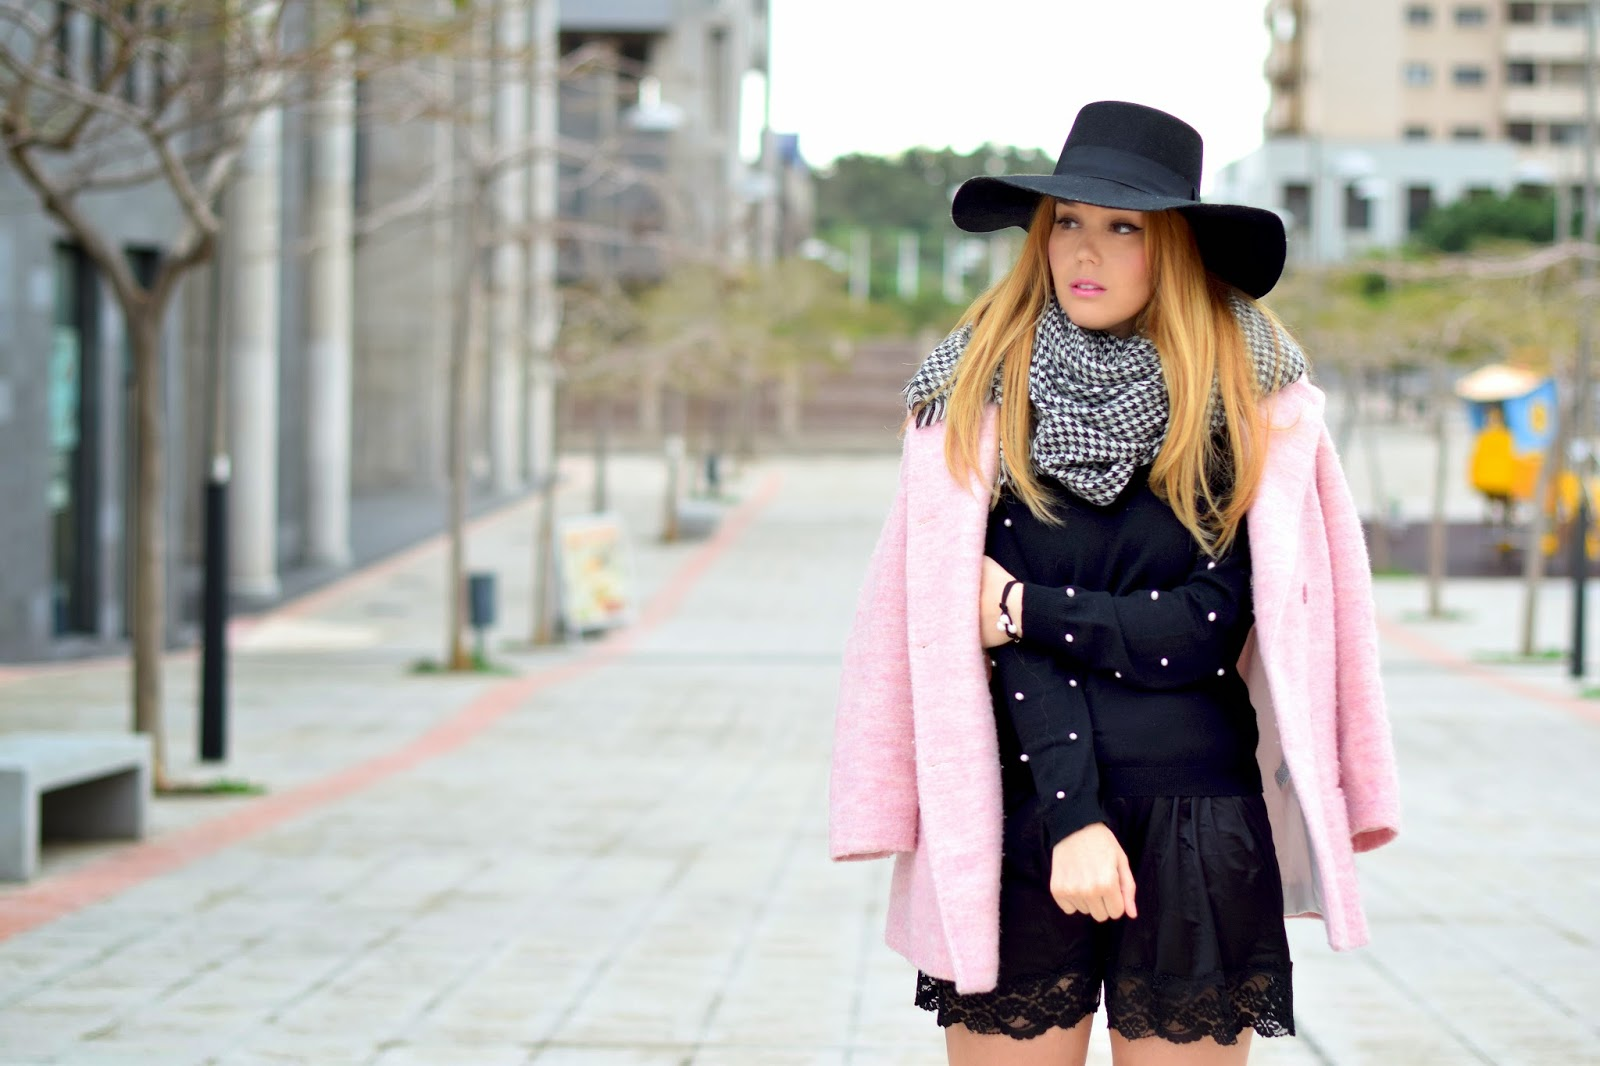 nery hdez, poppy lux, bisuteria la ola, candy coat, hat, pearls,